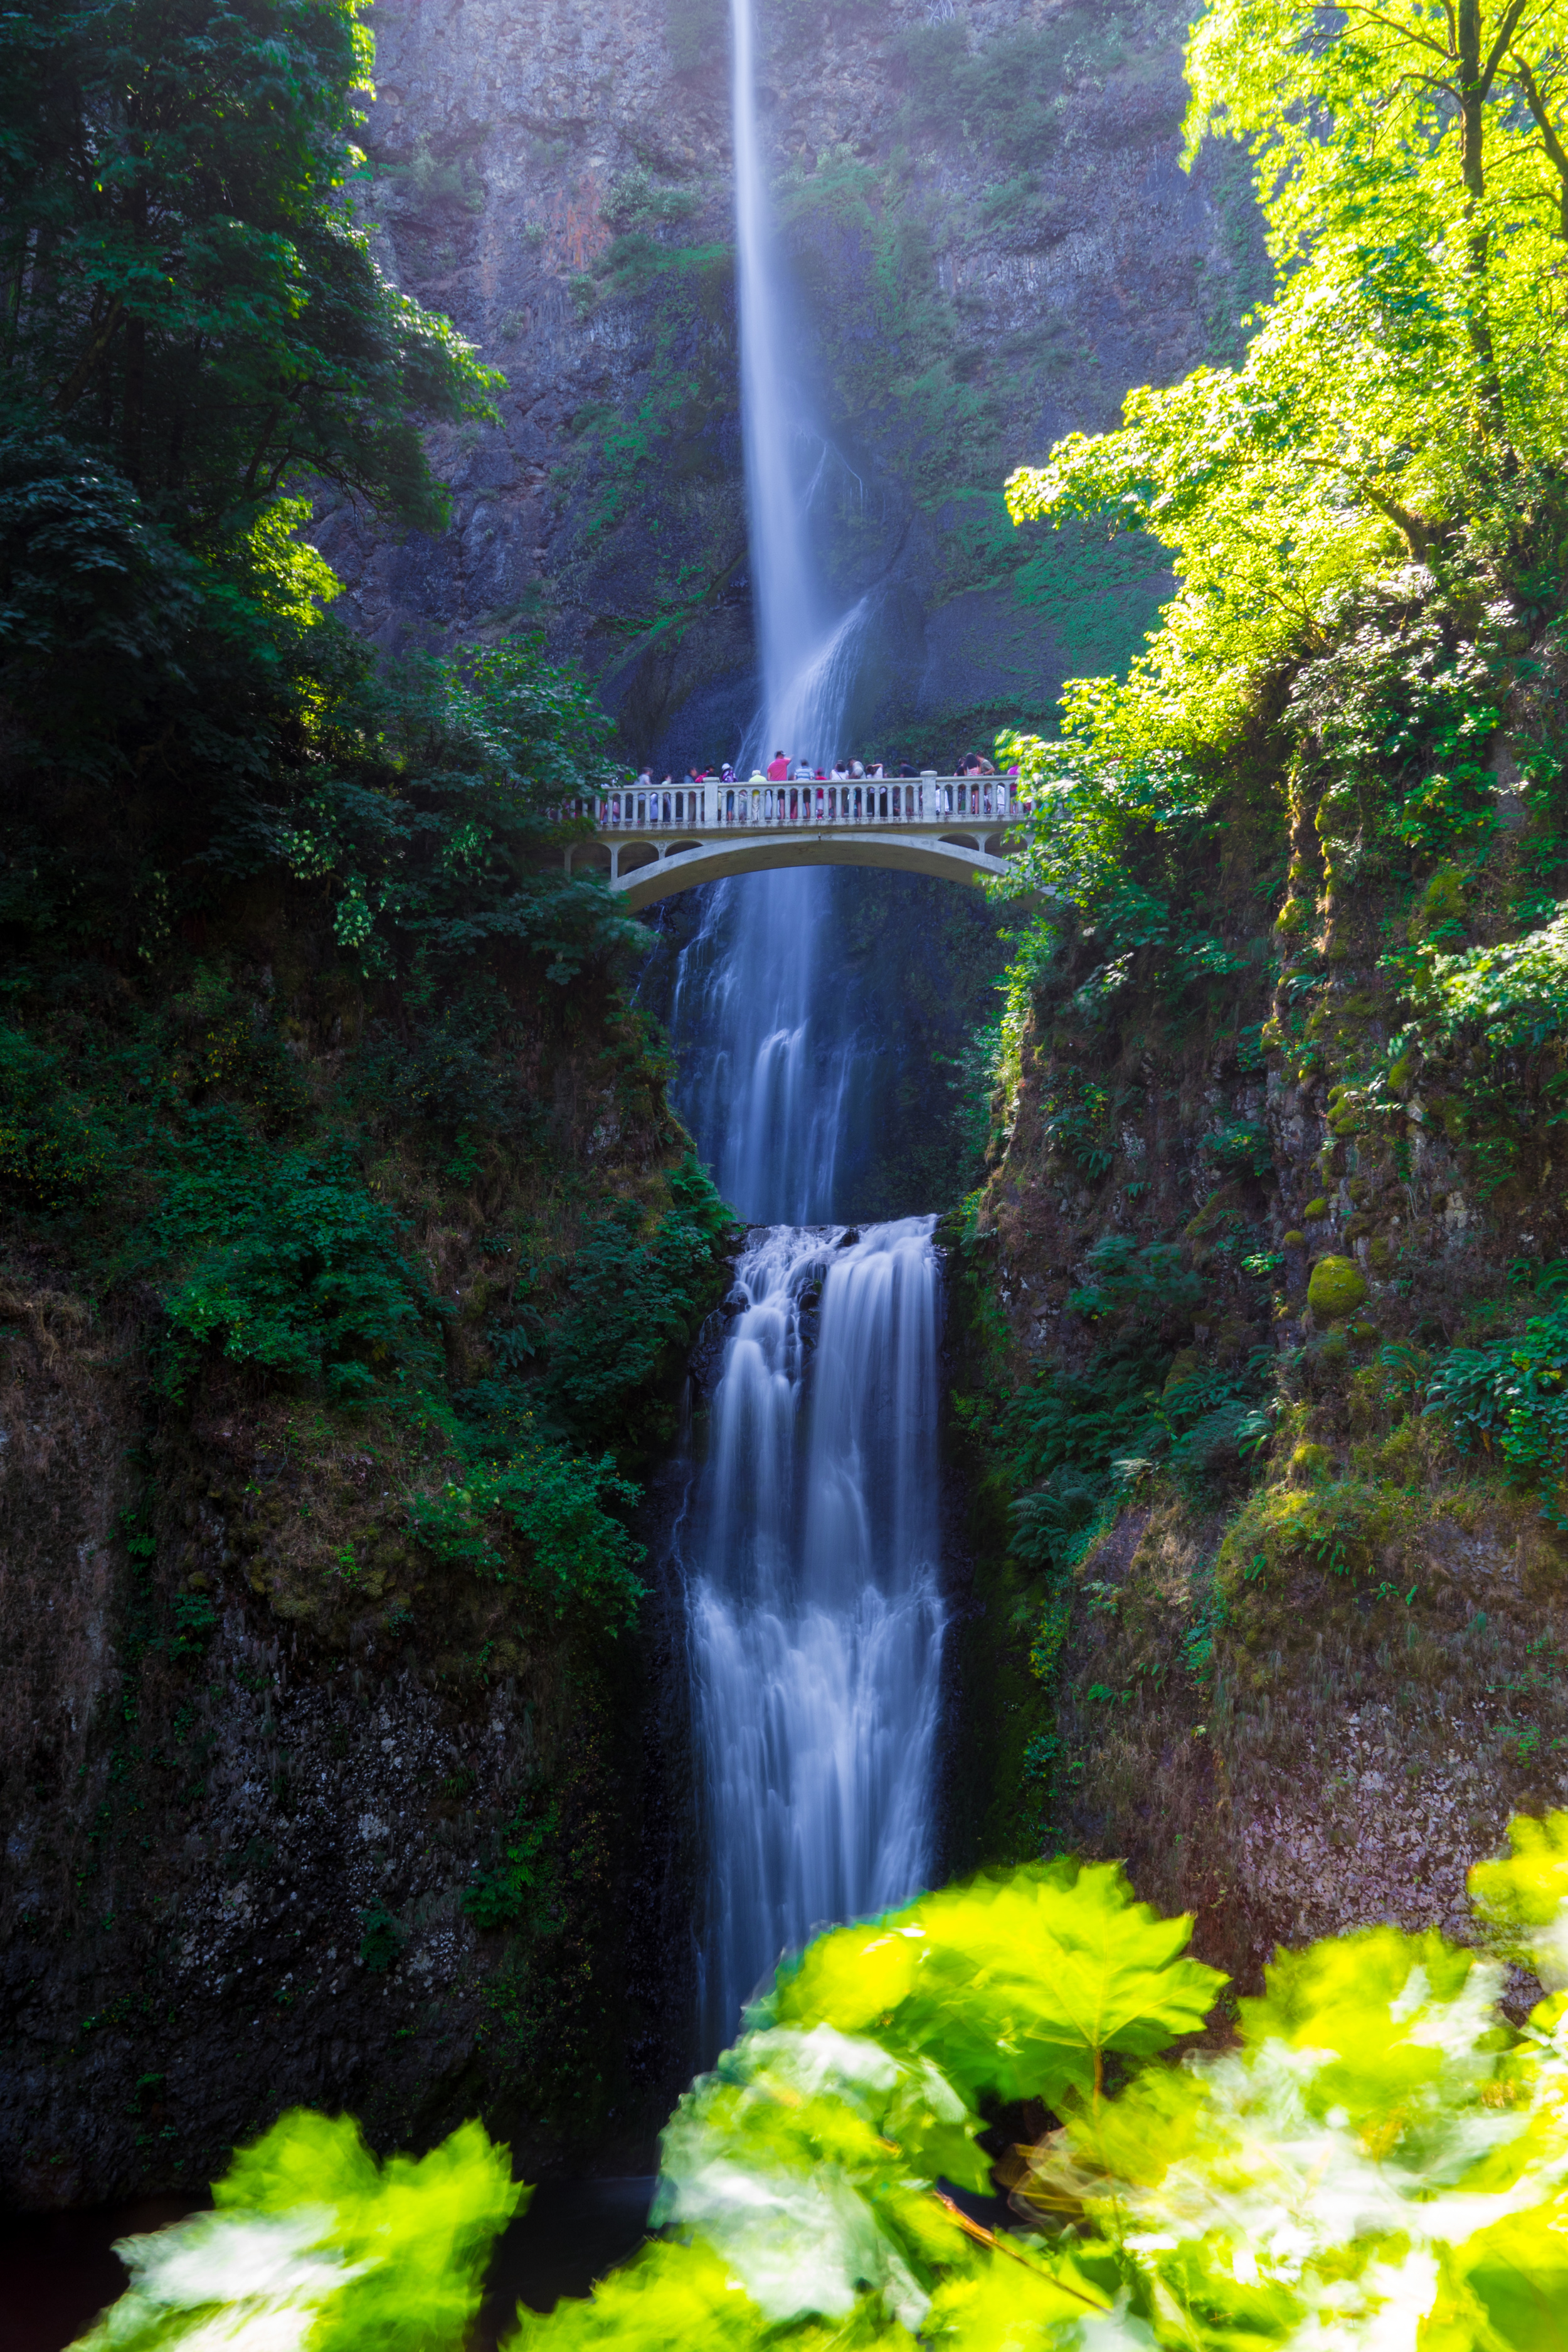 Multnomah Falls  is the tallest waterfall in Oregon.  The Benson Bridge in the foreground was built in 1914 by a Norwegian-American businessman Simon Benson (Wikipedia).